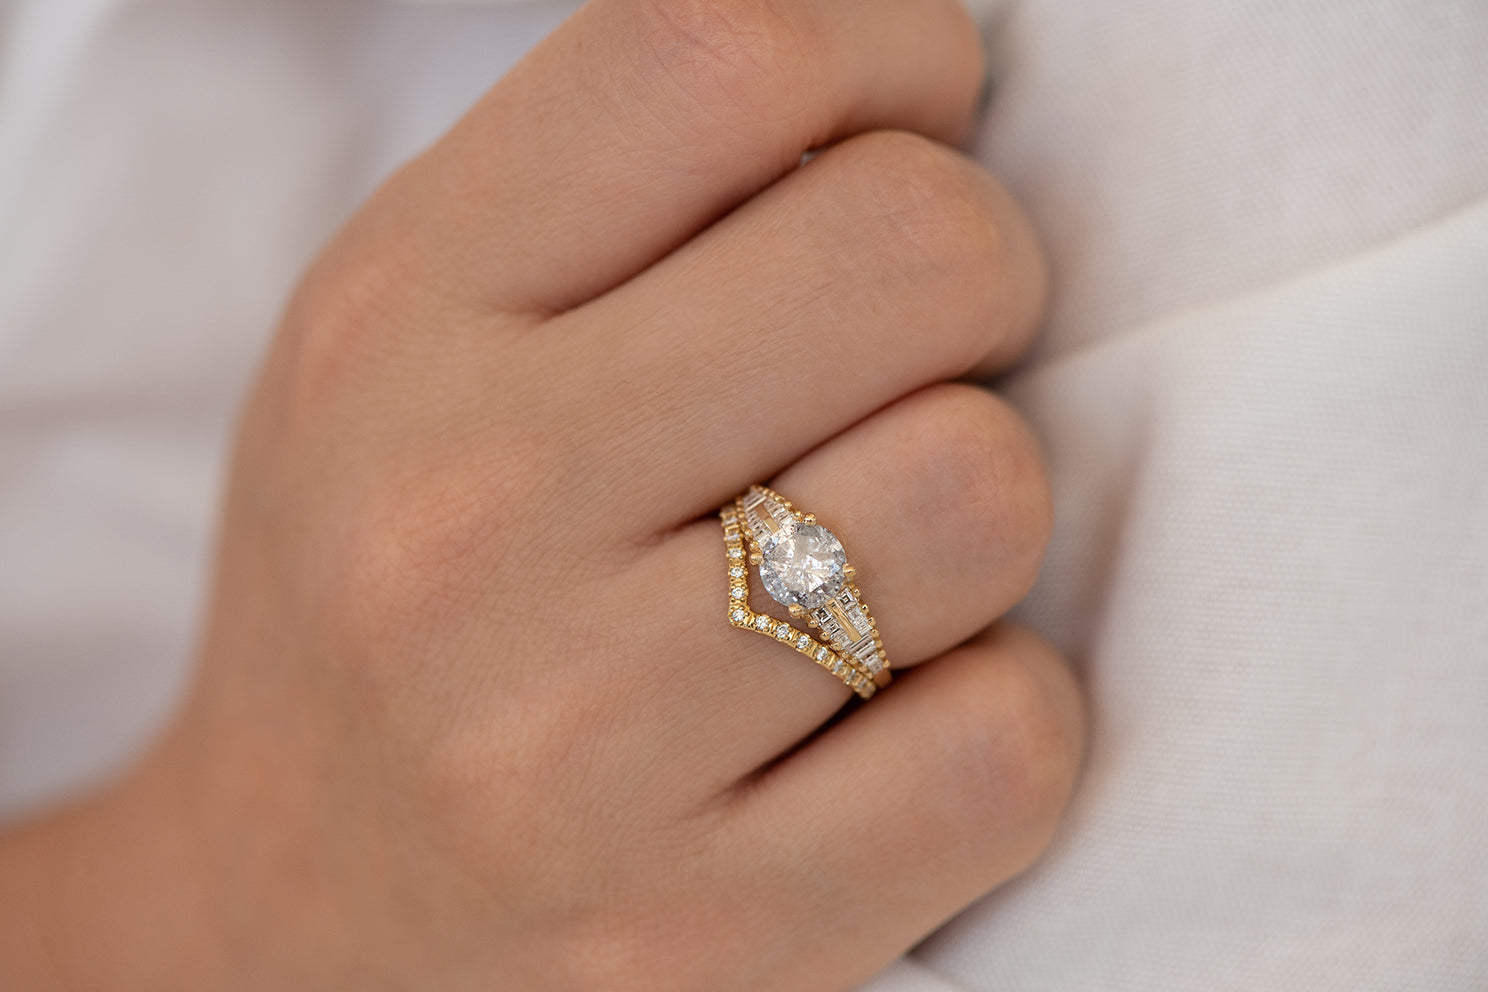 One Carat Diamond Ring with a Snowy Diamond on Hand in set front view